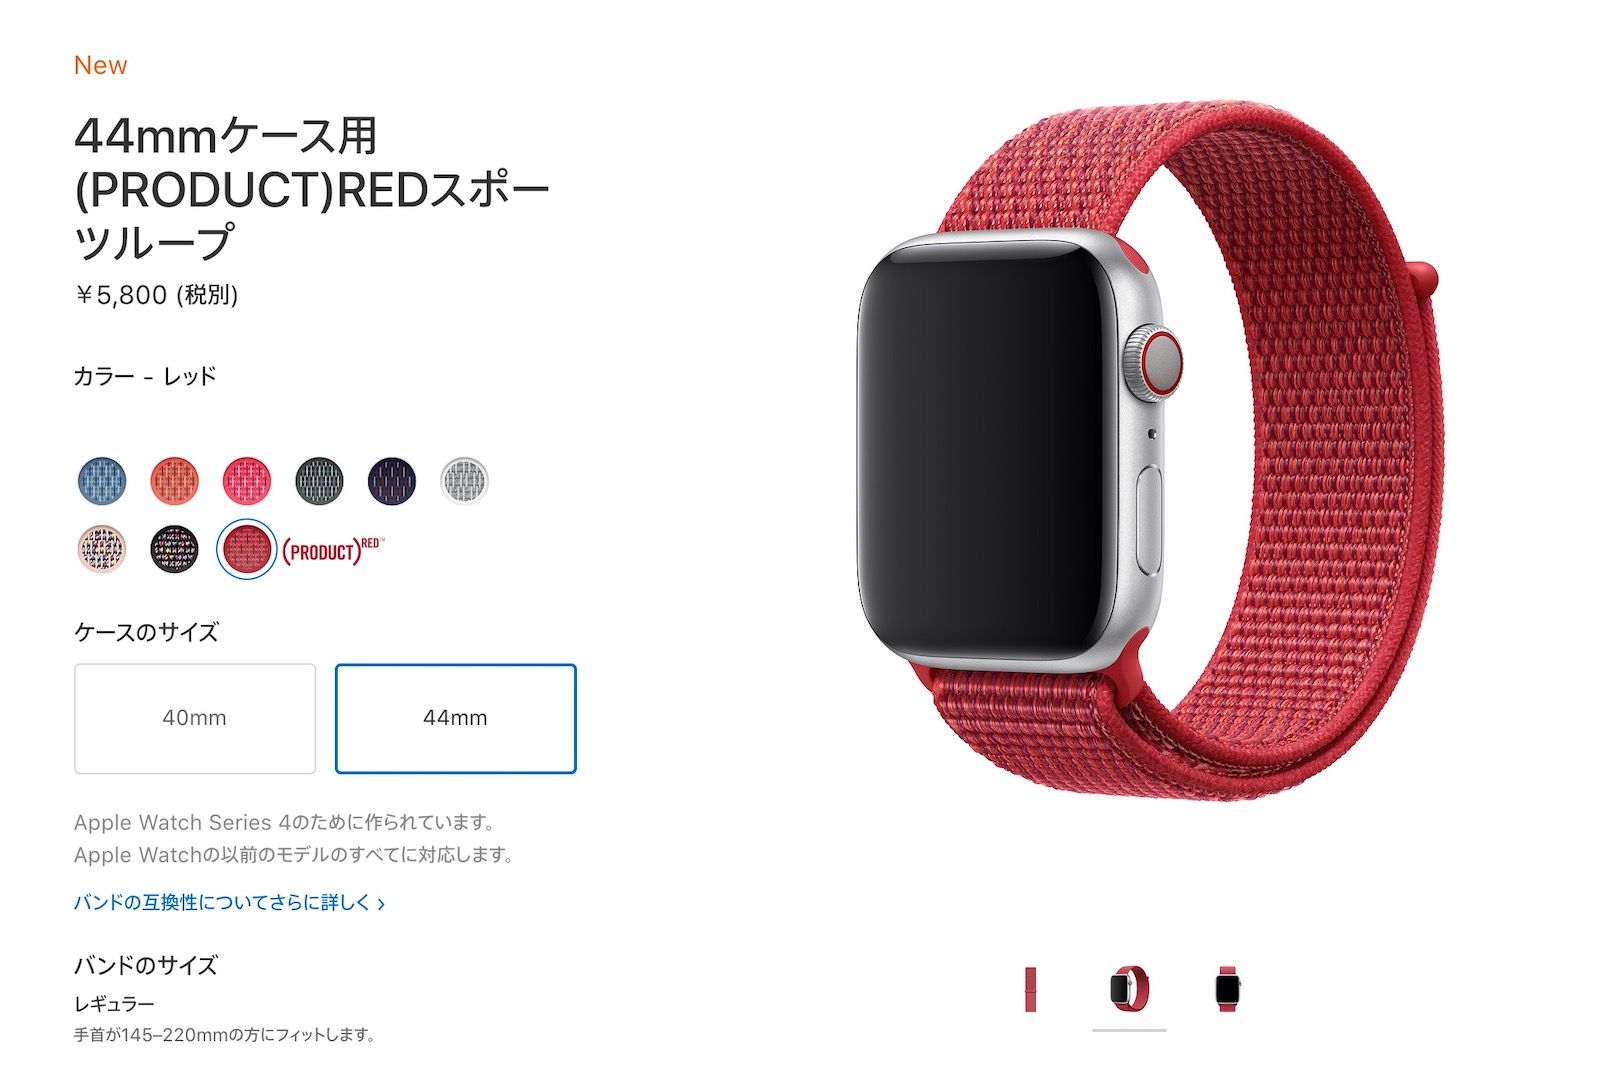 Apple Watch Sports Band product red